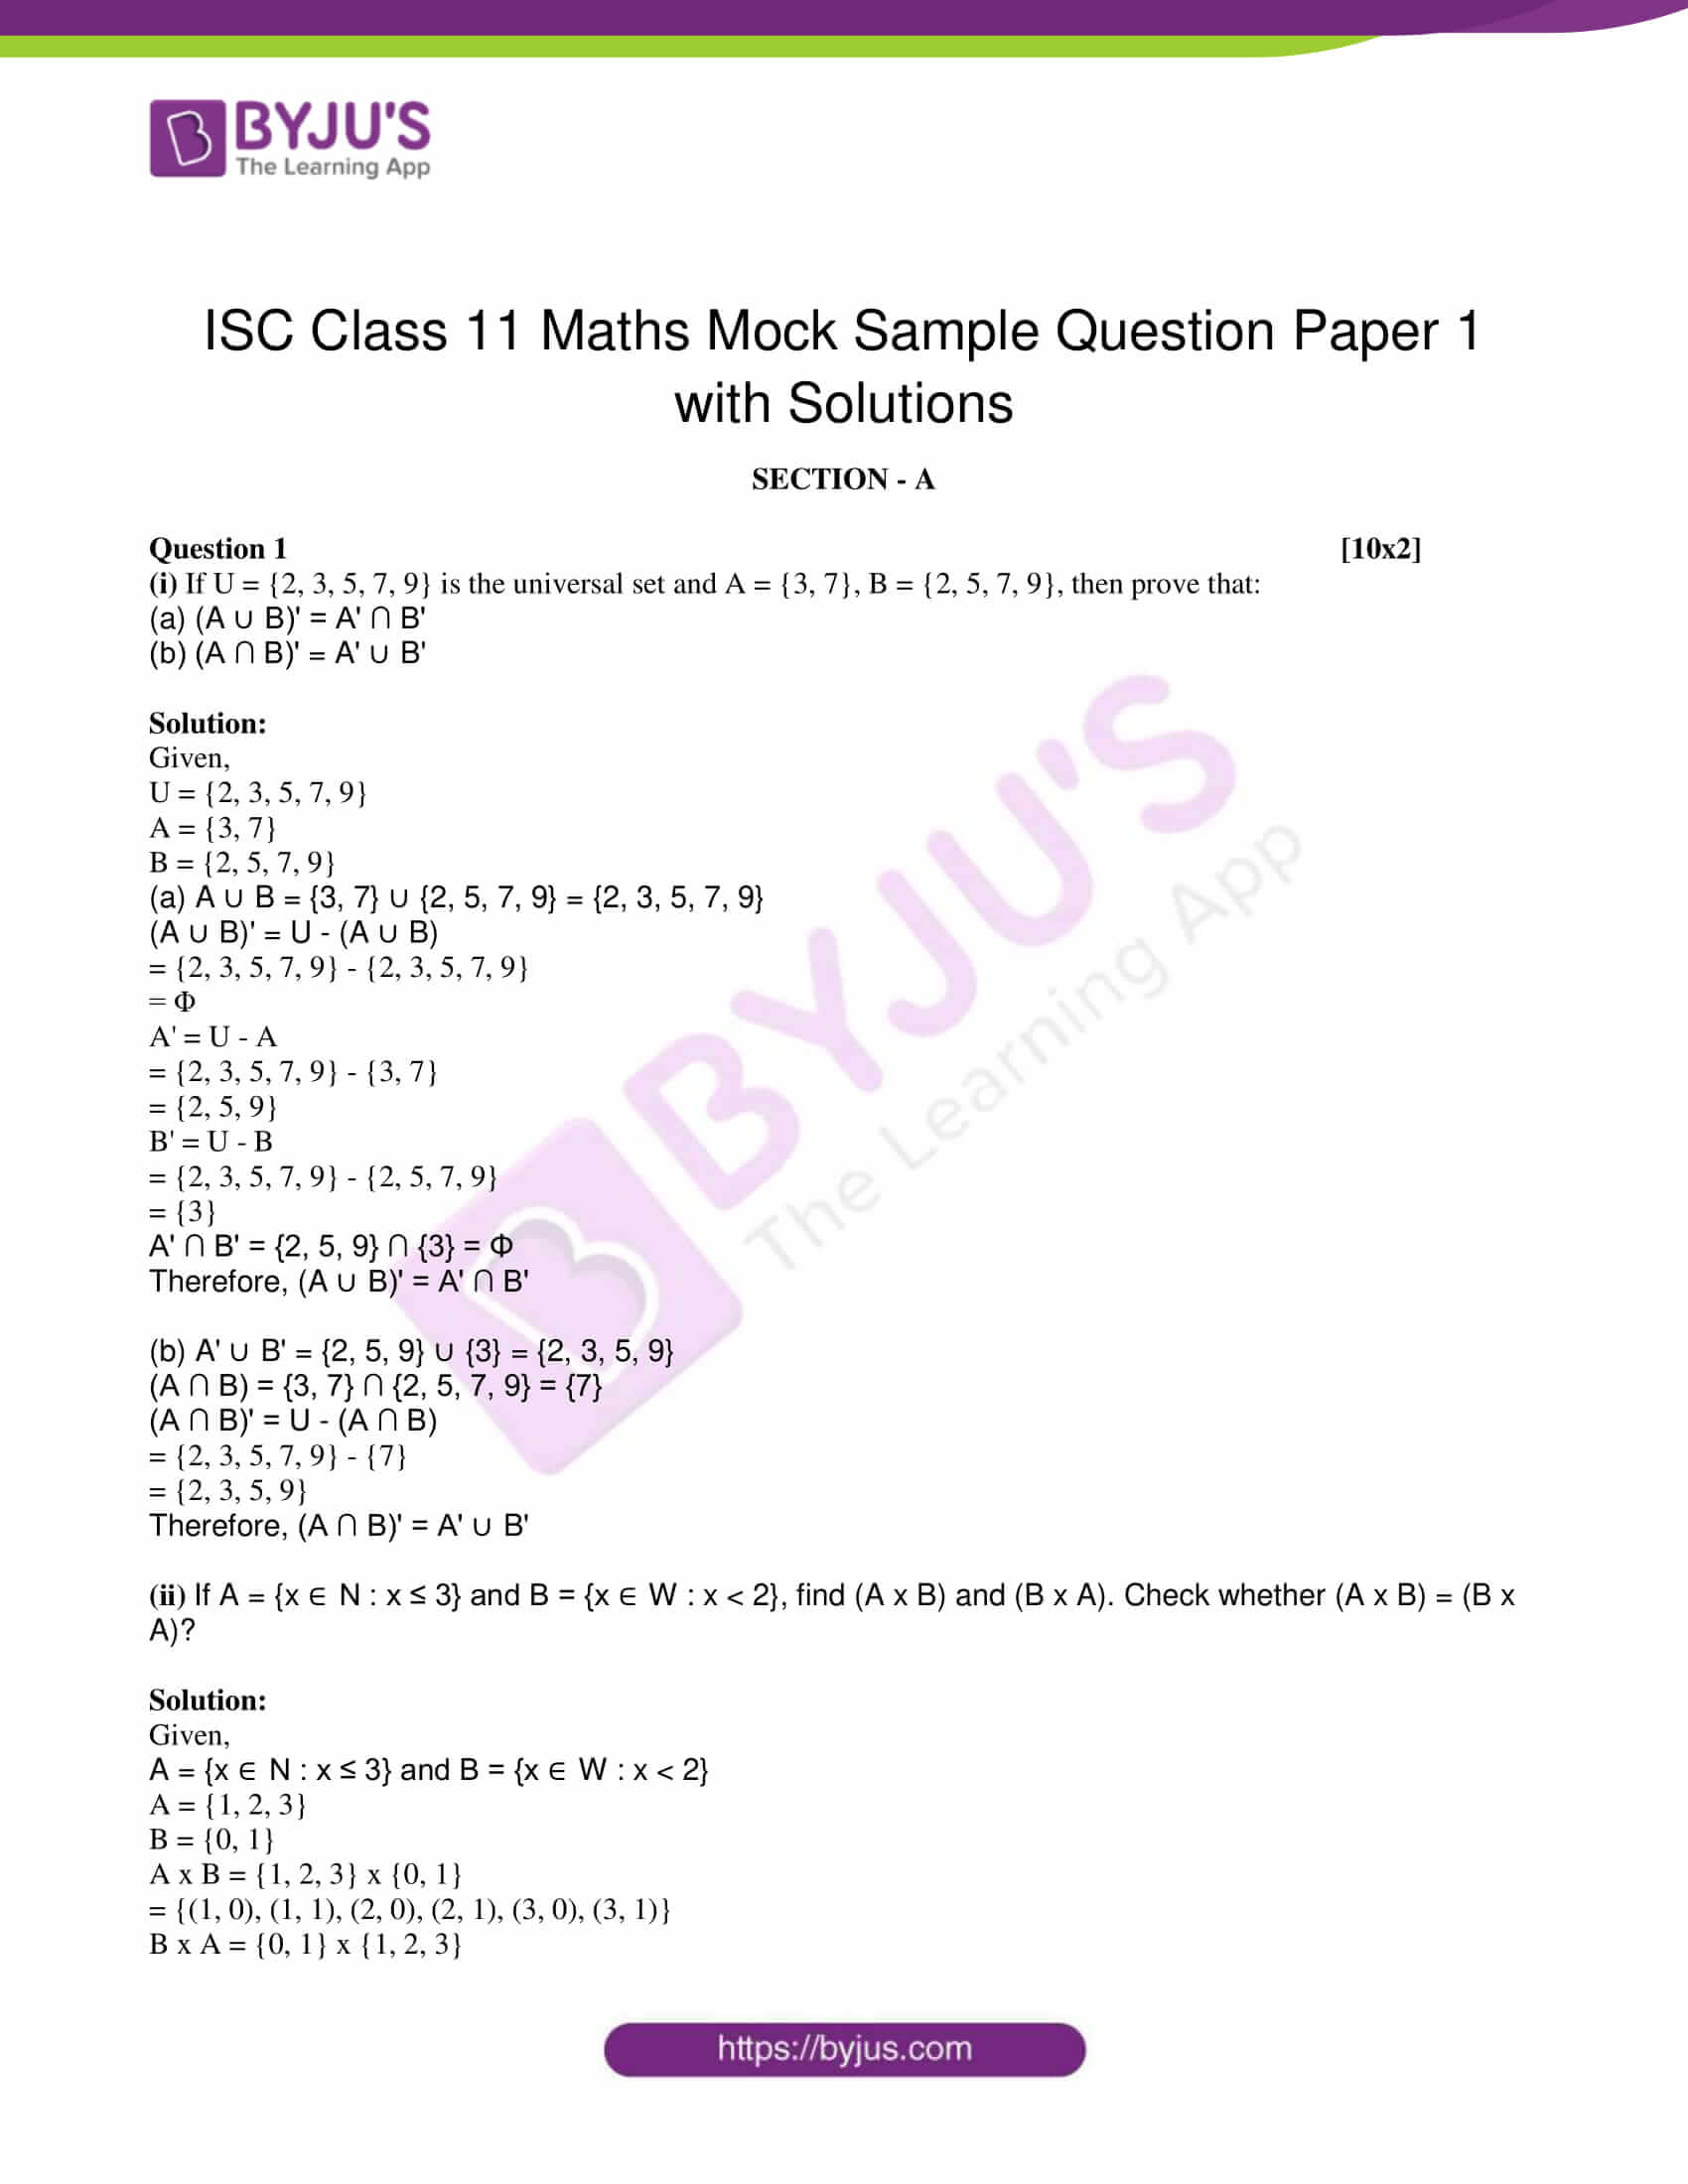 isc class 11 maths mock question paper with solution 1 01